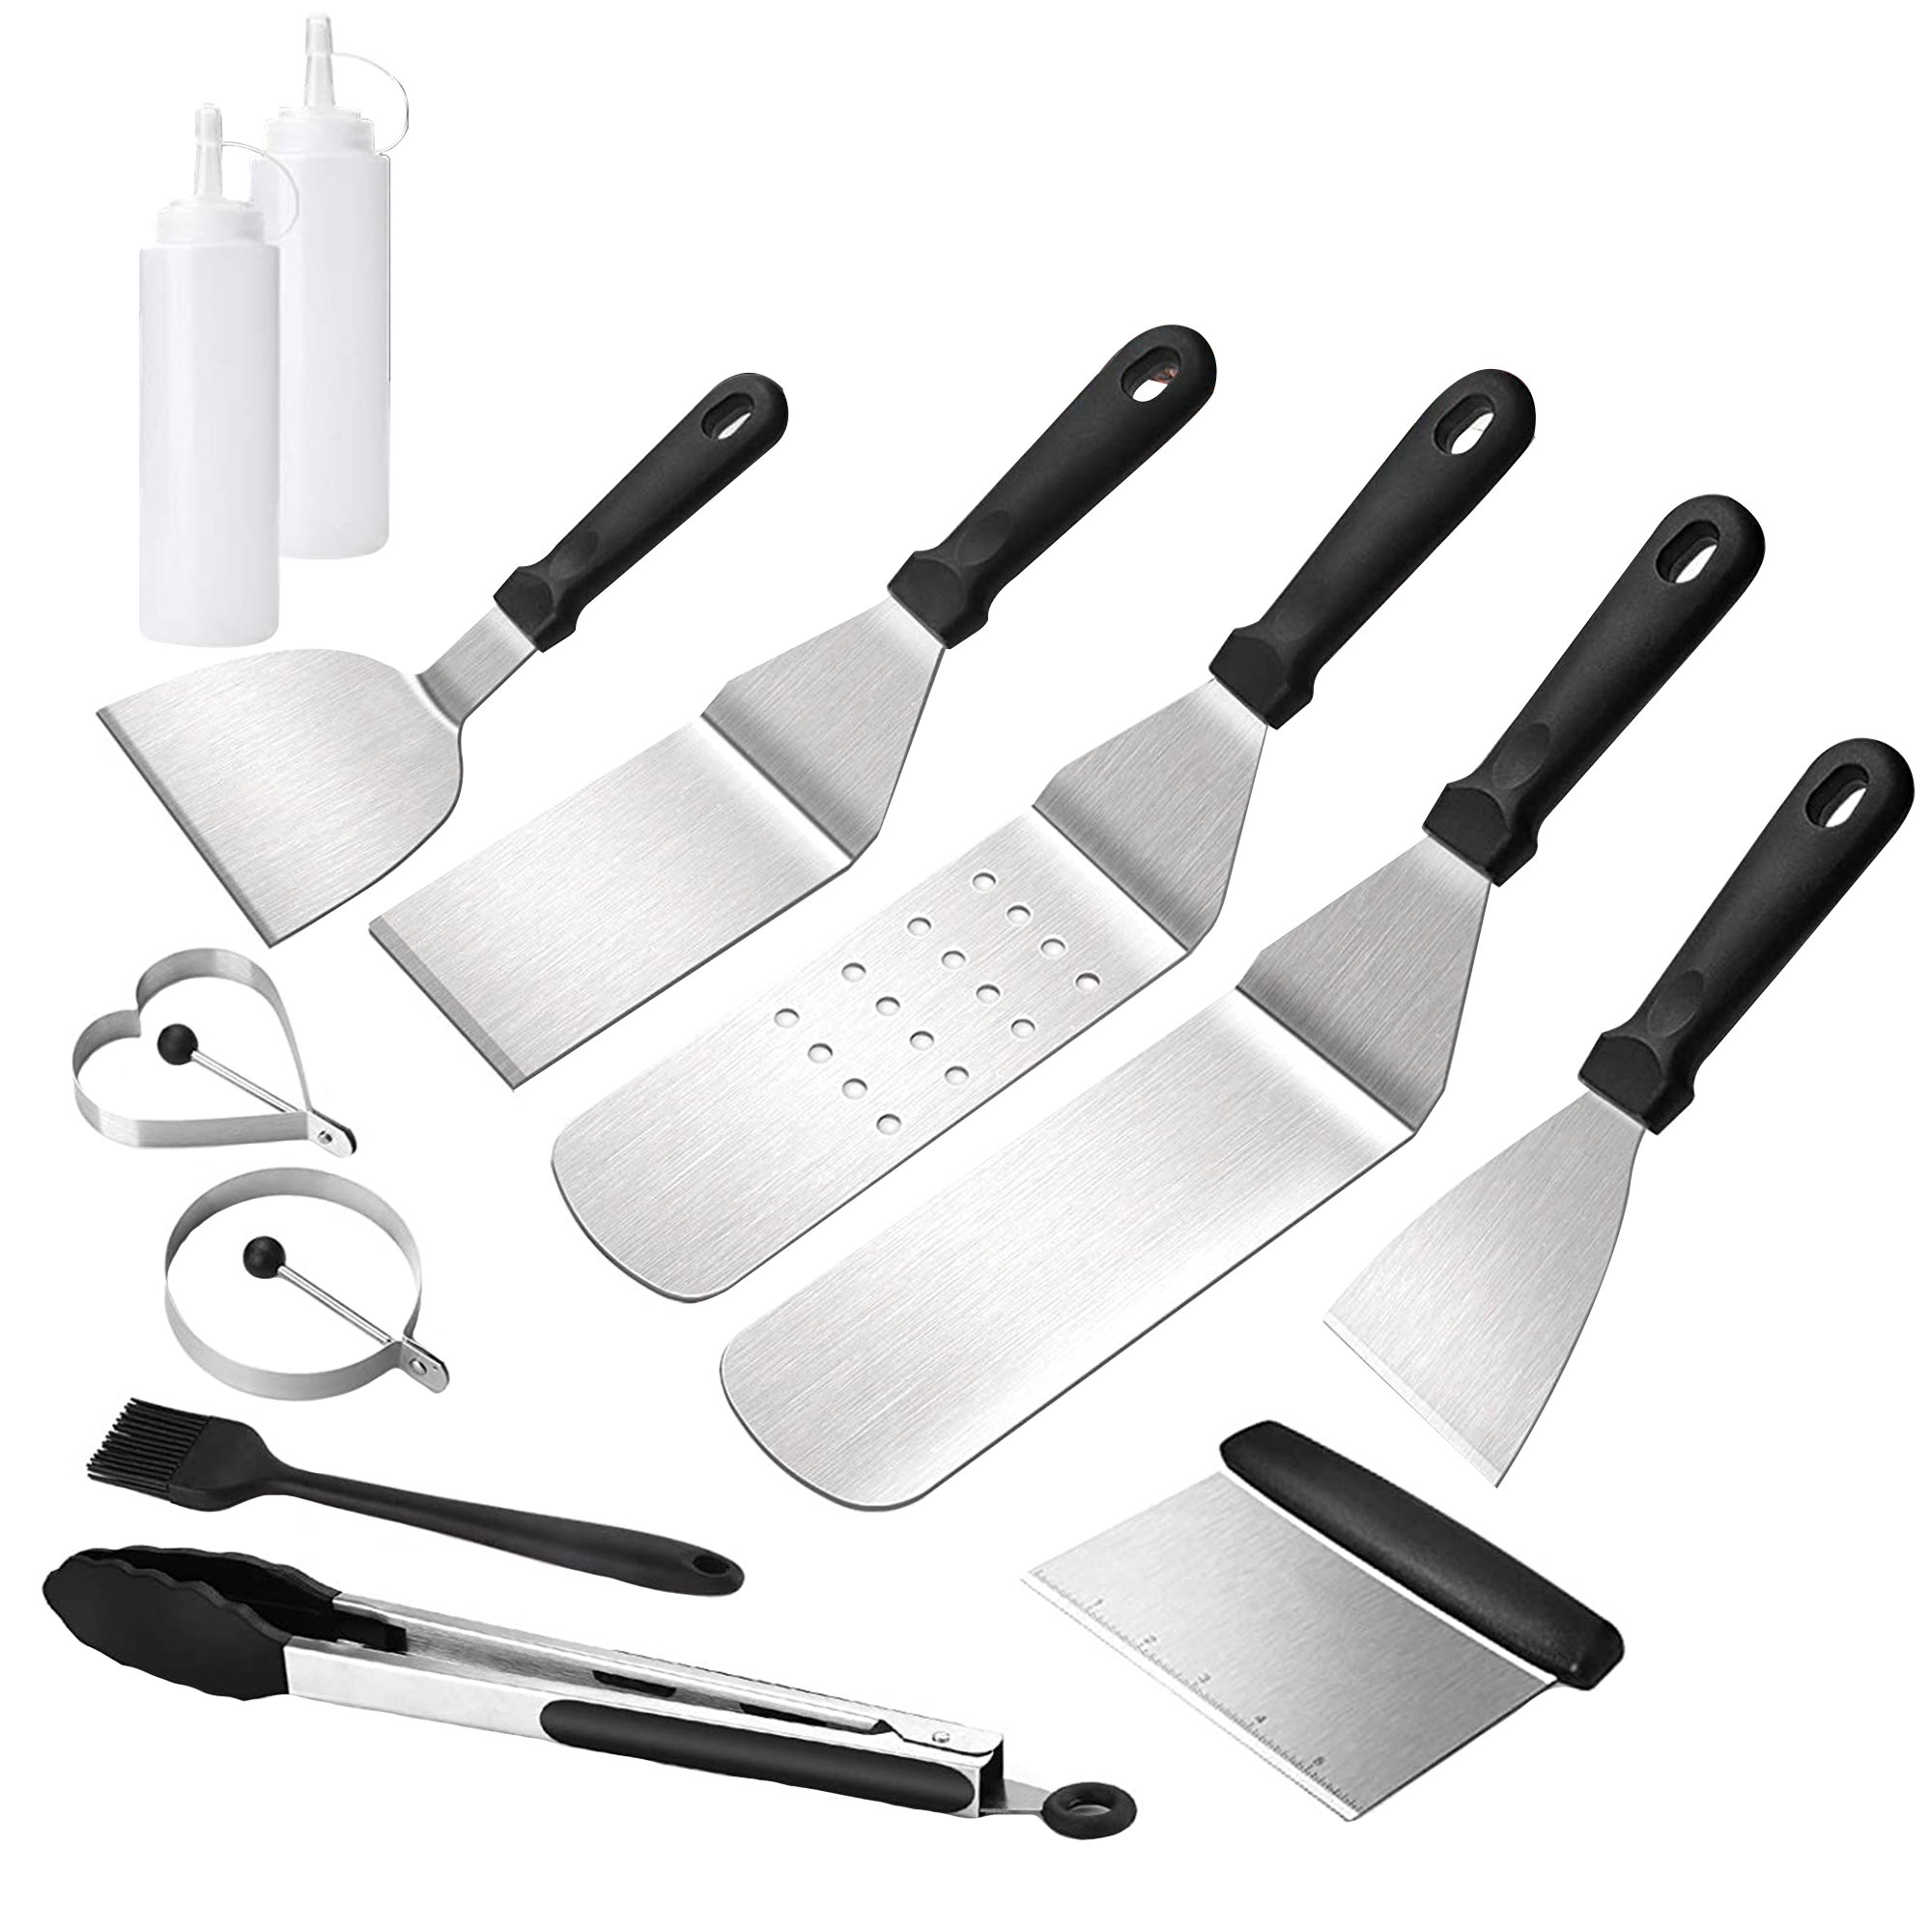 Stainless Steel Griddle Grill Utensil Set - 12Pcs